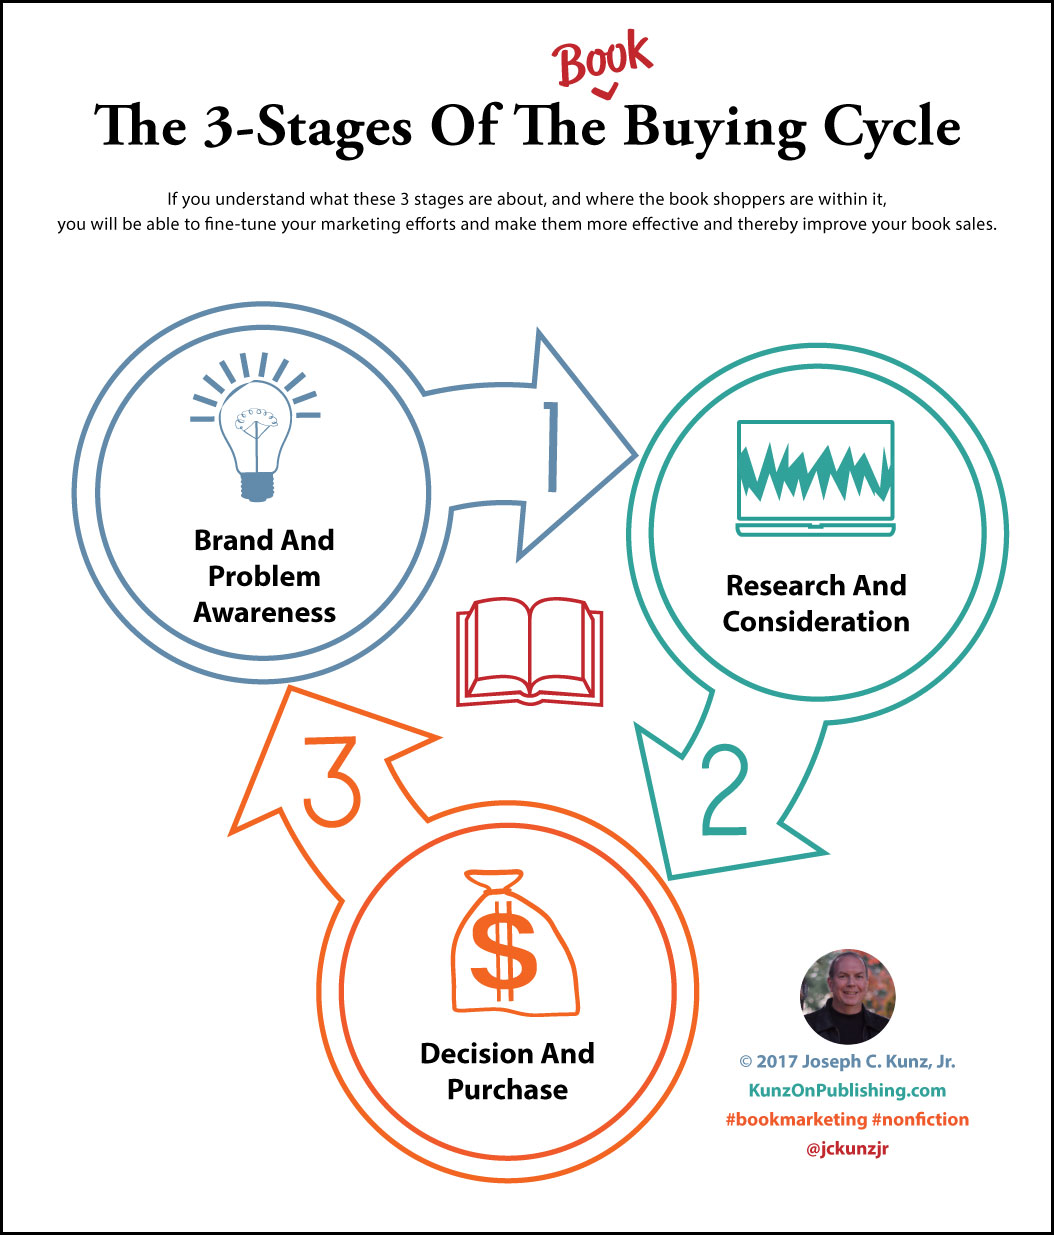 The 3-Stages Of The Book Buying Cycle (Infographic) by Joseph C. Kunz, Jr.